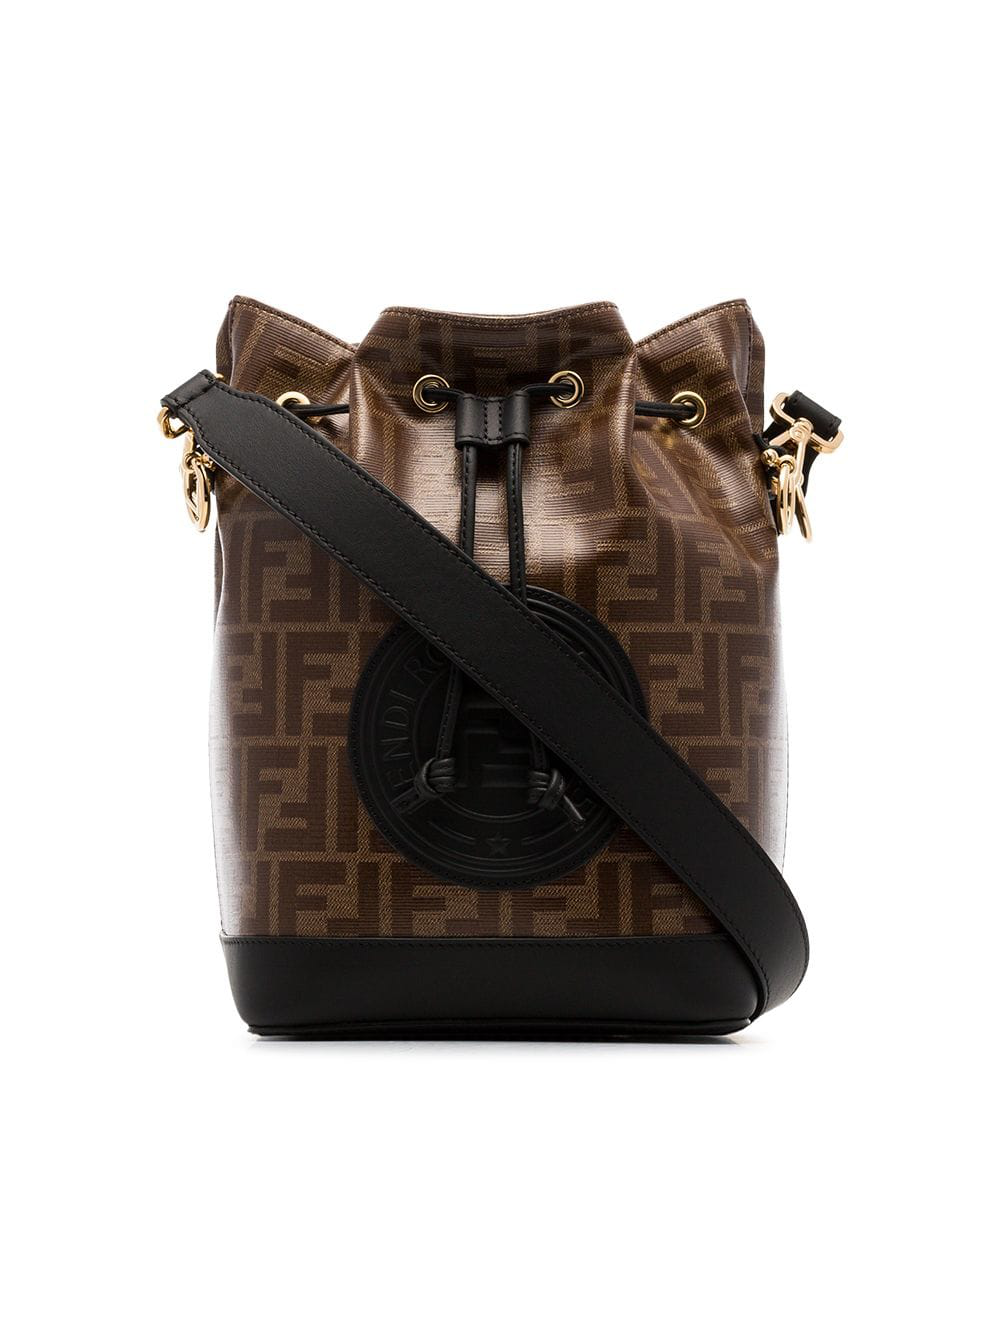 e127cccbec7d8 Fendi Black And Brown Mon Tresor Canvas And Leather Bucket Bag ...